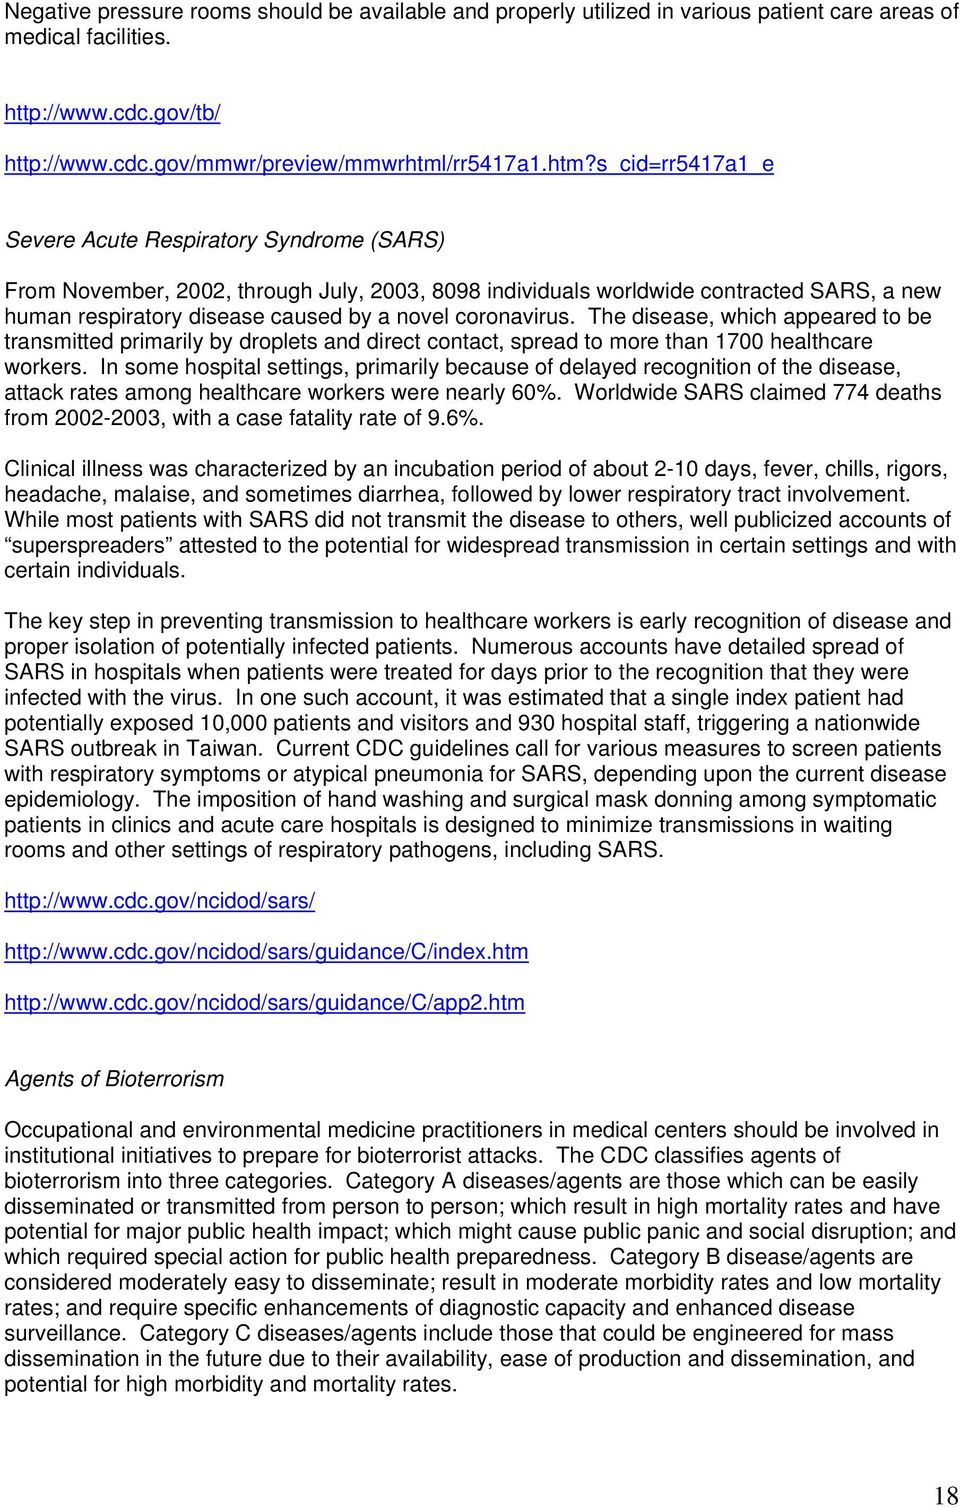 s_cid=rr5417a1_e Severe Acute Respiratory Syndrome (SARS) From November, 2002, through July, 2003, 8098 individuals worldwide contracted SARS, a new human respiratory disease caused by a novel